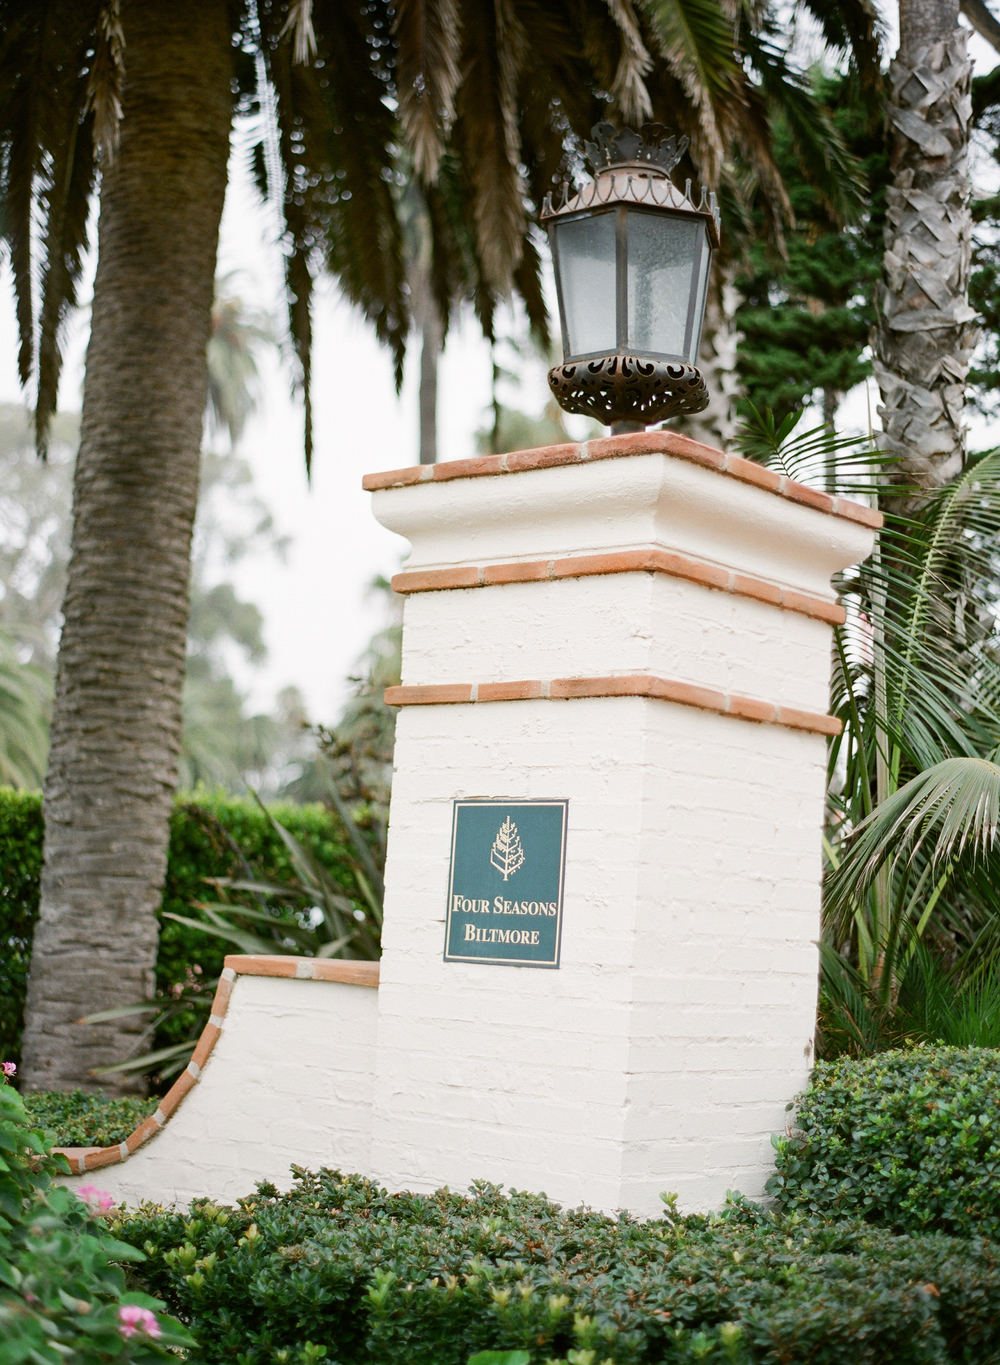 magnoliaeventdesign.com | Jose Villa | Wedding at The Four Seasons Biltmore in Santa Barbara | Magnolia Event Design